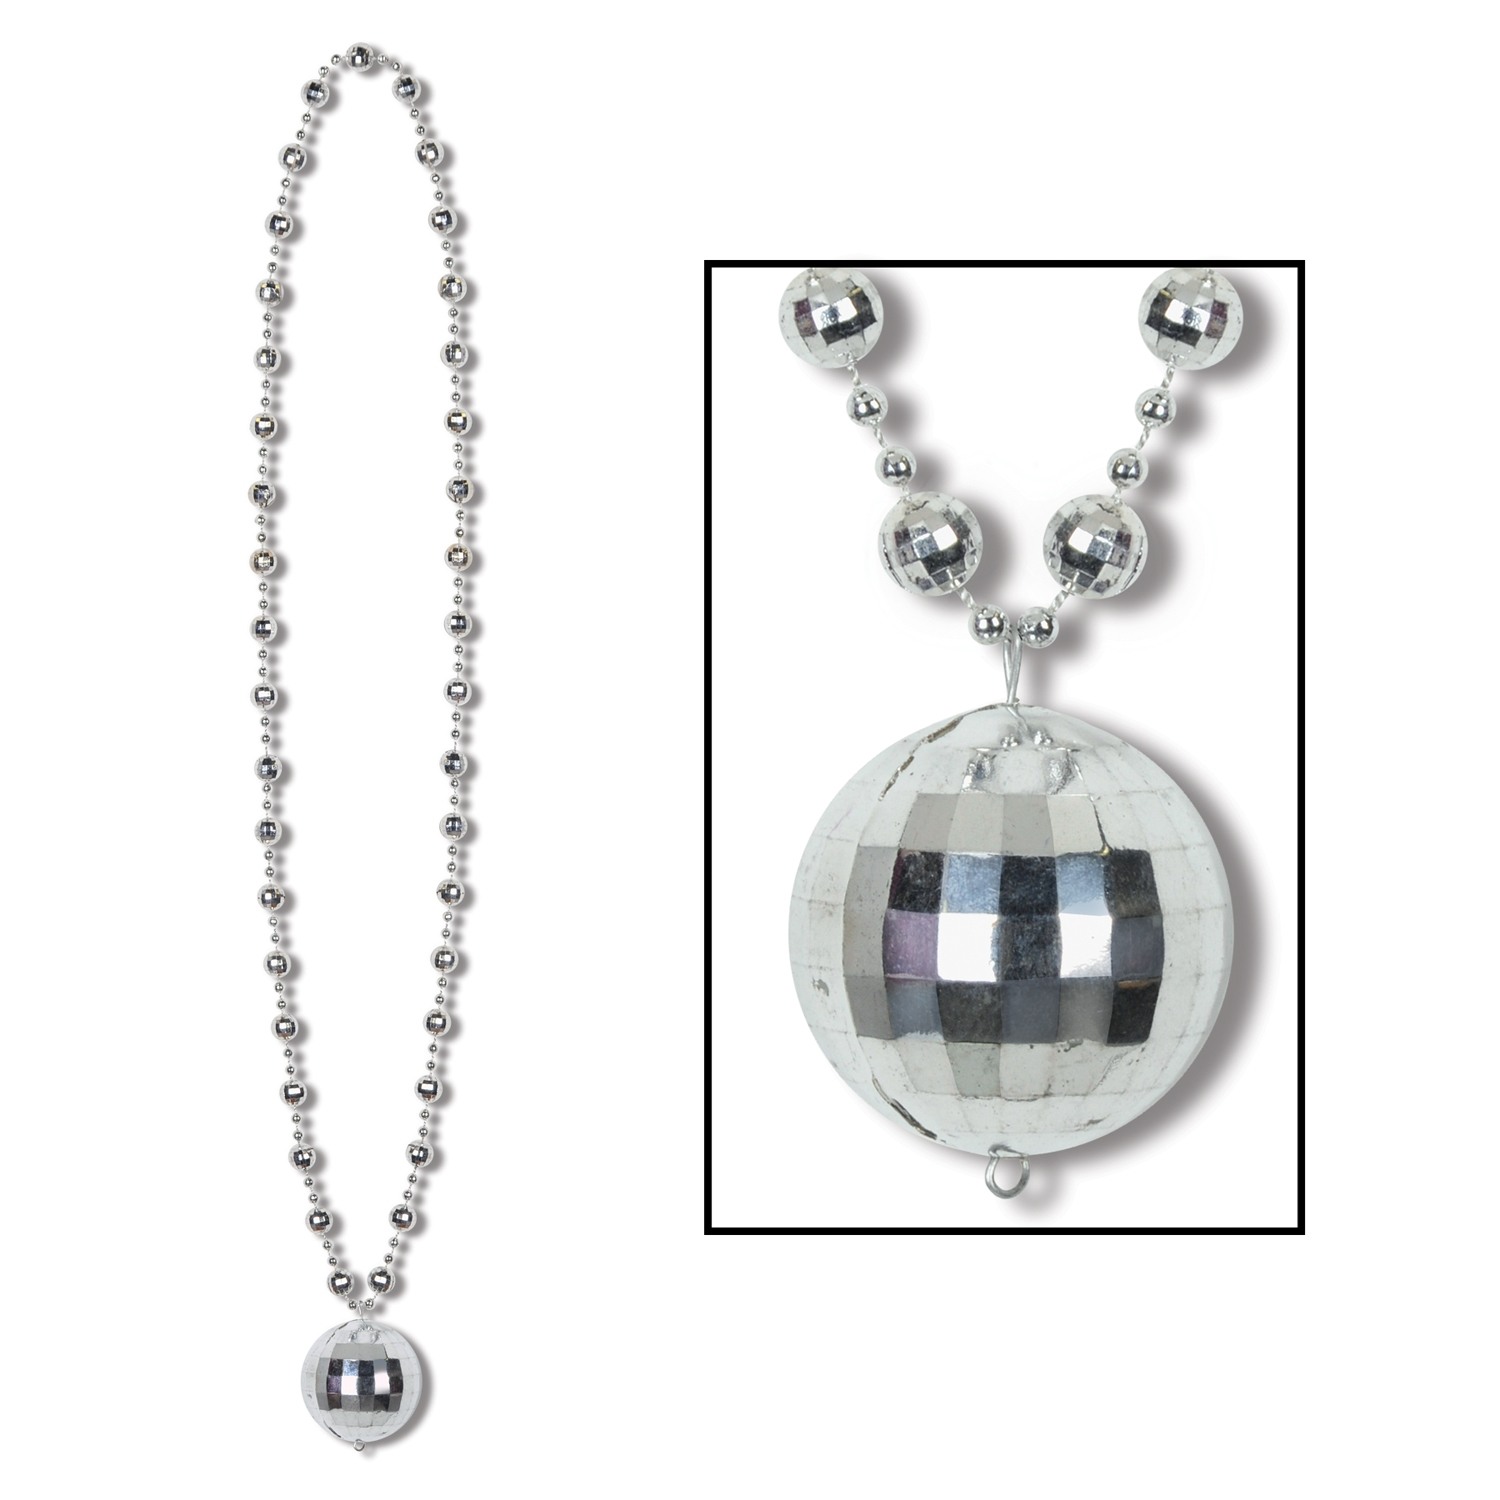 Silver disco ball necklace in the theme of 1970s disco